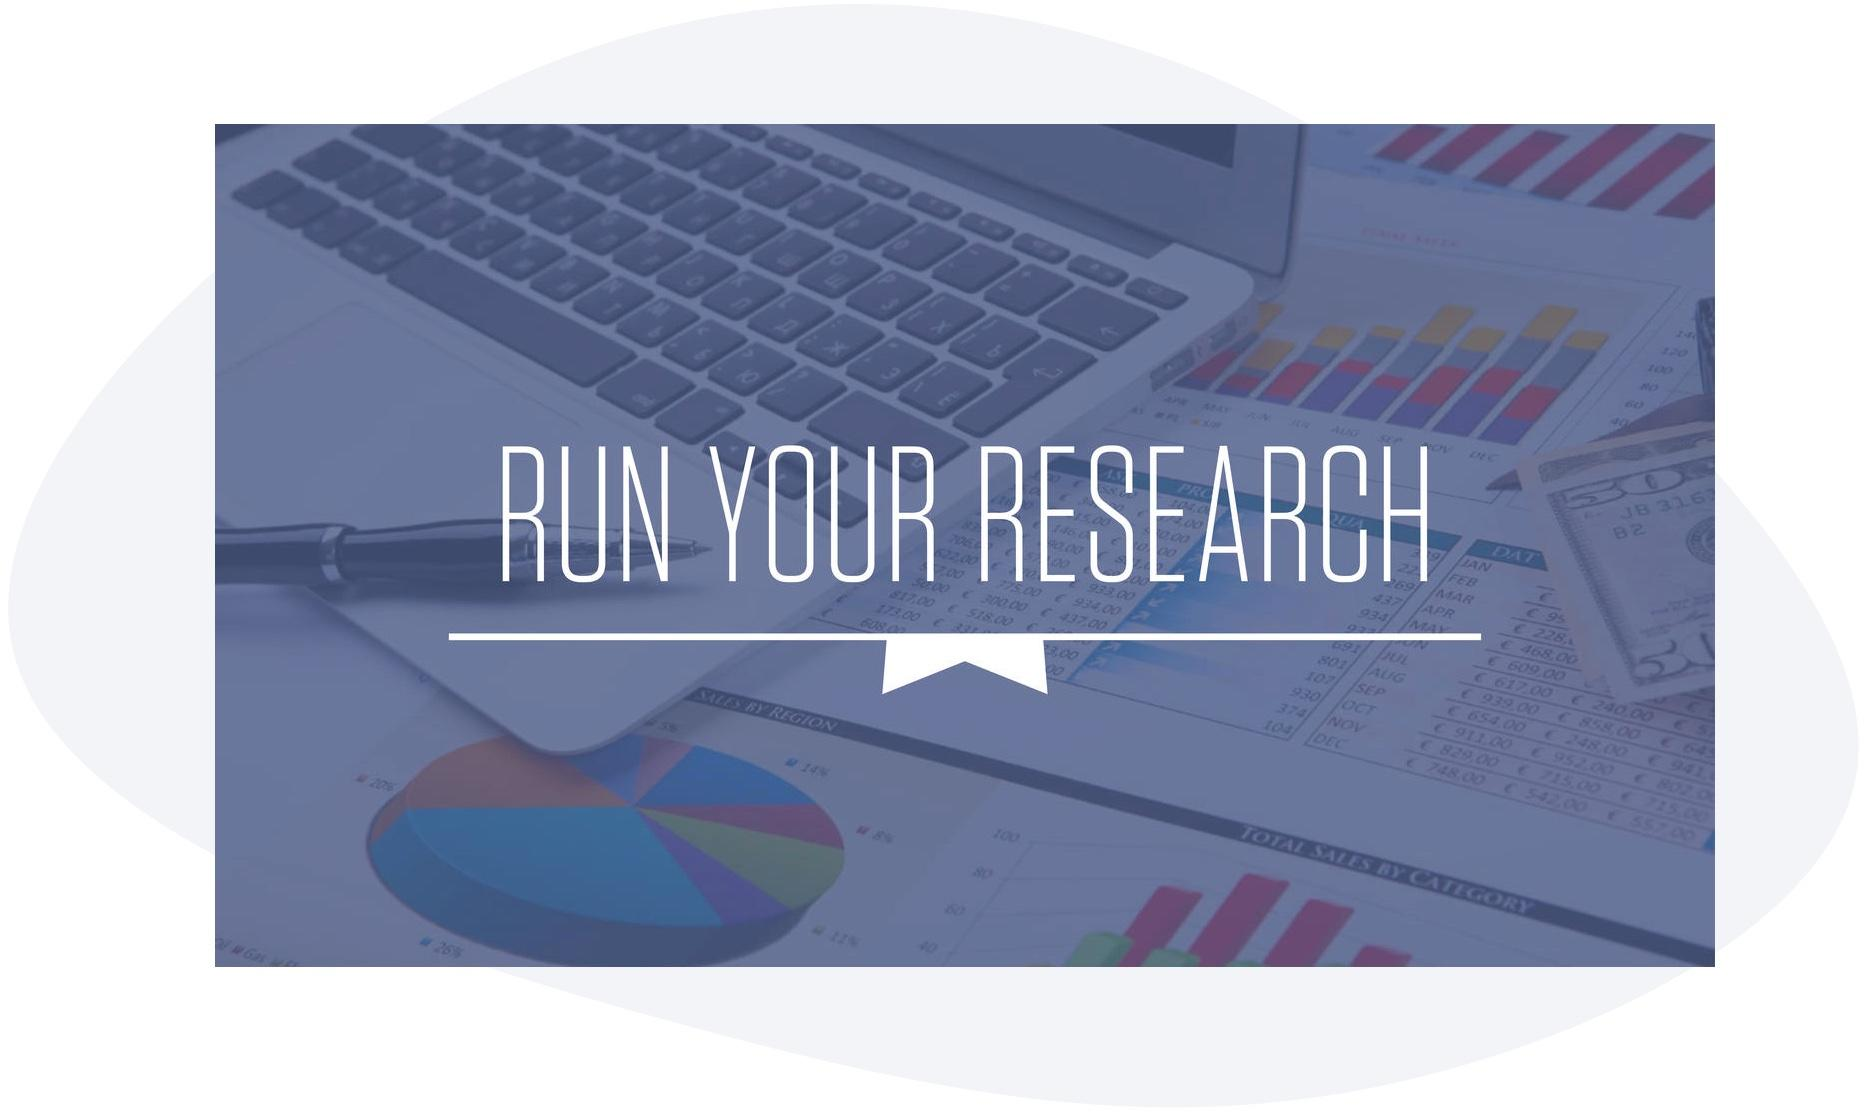 Run your research